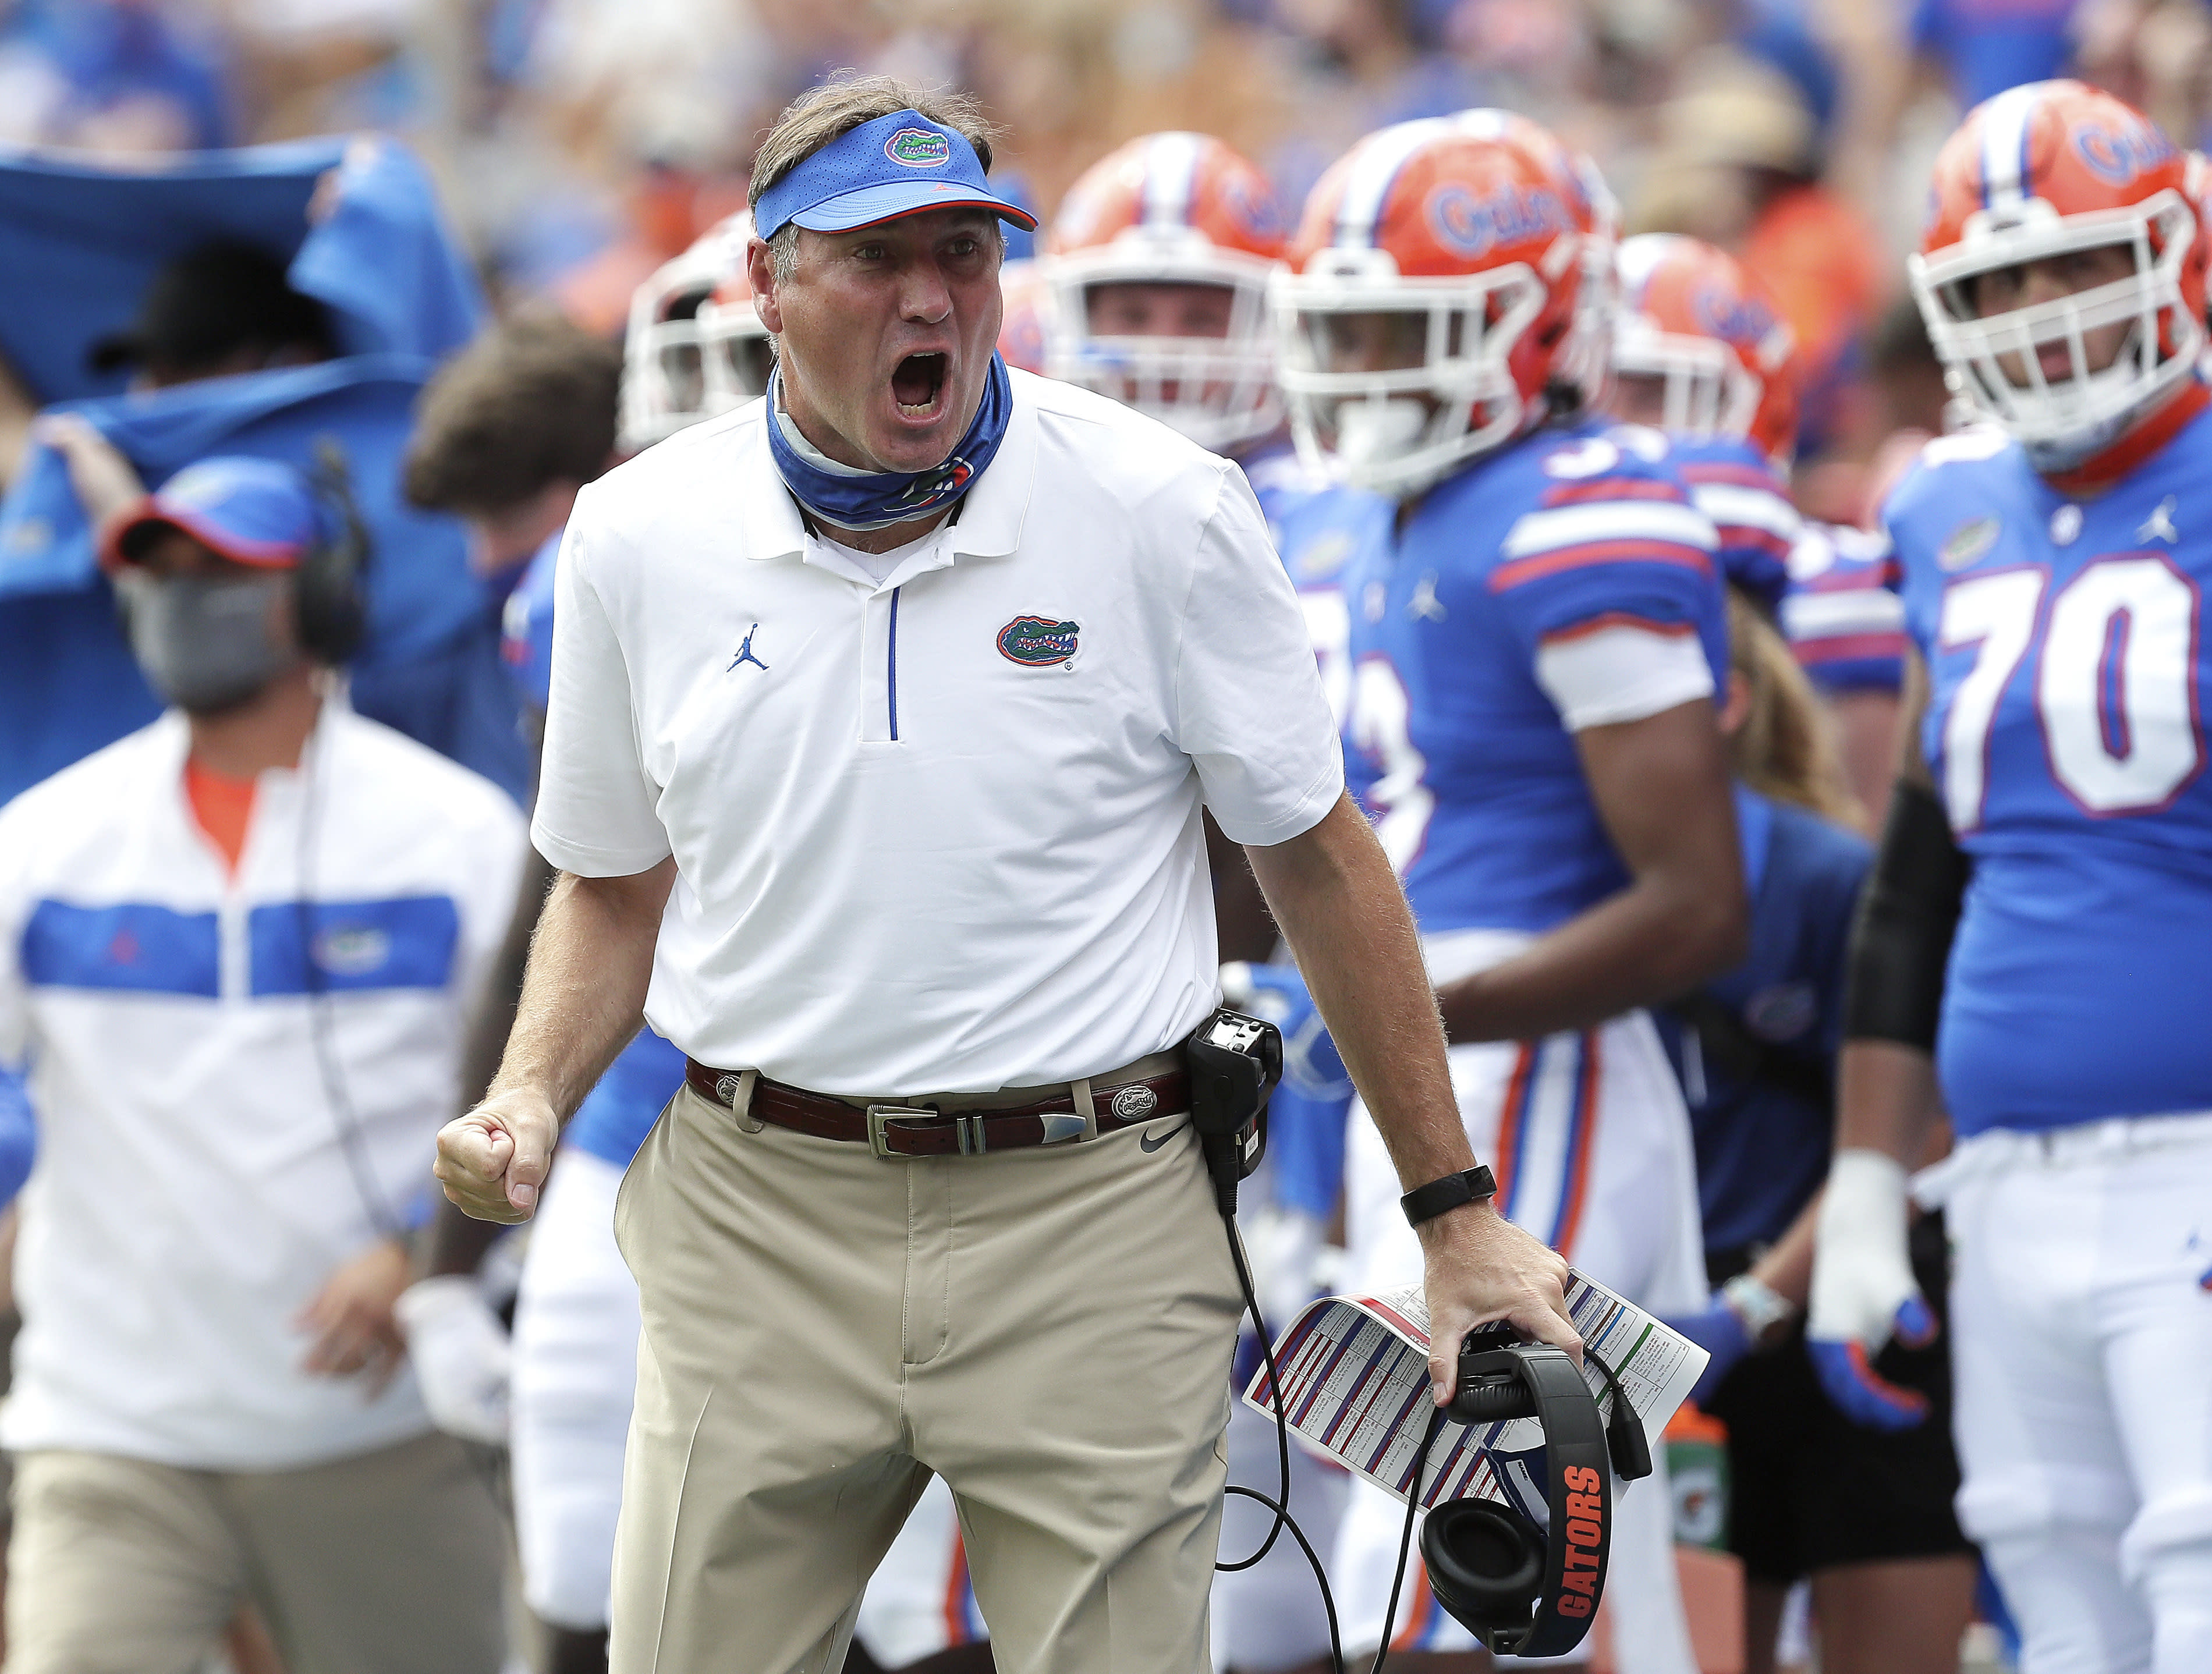 FILE - In this Oct. 3, 2020, file photo, Florida head coach Dan Mullen yells to a referee about a call during an NCAA college football game against South Carolina in Gainesville, Fla. Mullen was given several more chances Monday, Oct. 12, 2020, to walk back bizarre comments about wanting to pack 90,000 screaming fans inside Florida Field during the coronavirus pandemic. He declined each of them, brushing aside criticism and insisting he's focused on defending national champion LSU. (Brad McClenny/The Gainesville Sun via AP, Pool, File)